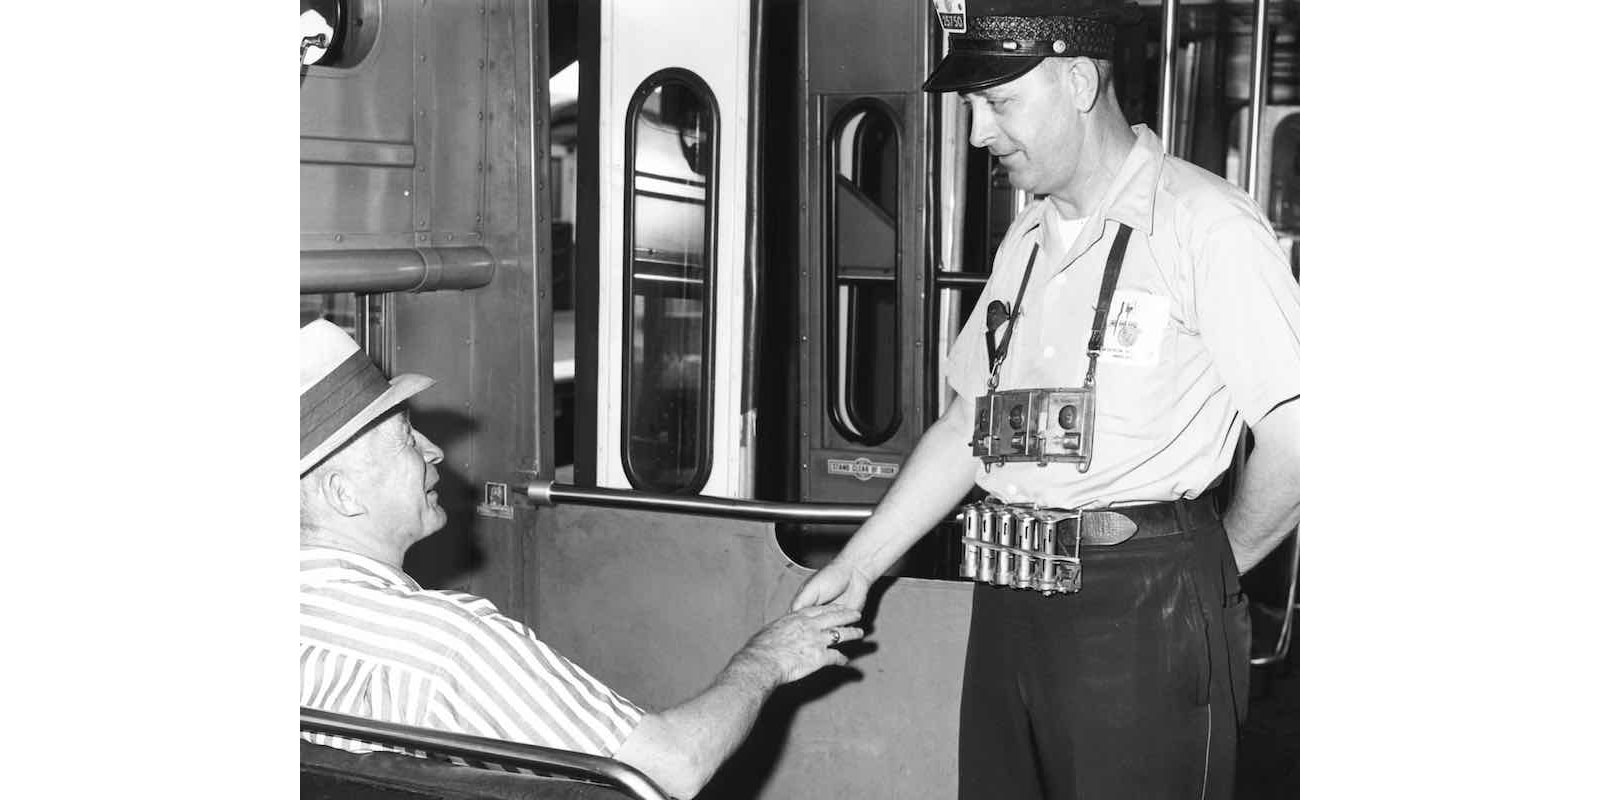 Until 1997, passengers were able to pay on the trains during light ridership periods. Here, a conductor accepts fares on board an 'L' car from the Ravenswood Line (now the Brown line) in 1964. (Courtesy Chicago Transit Authority)